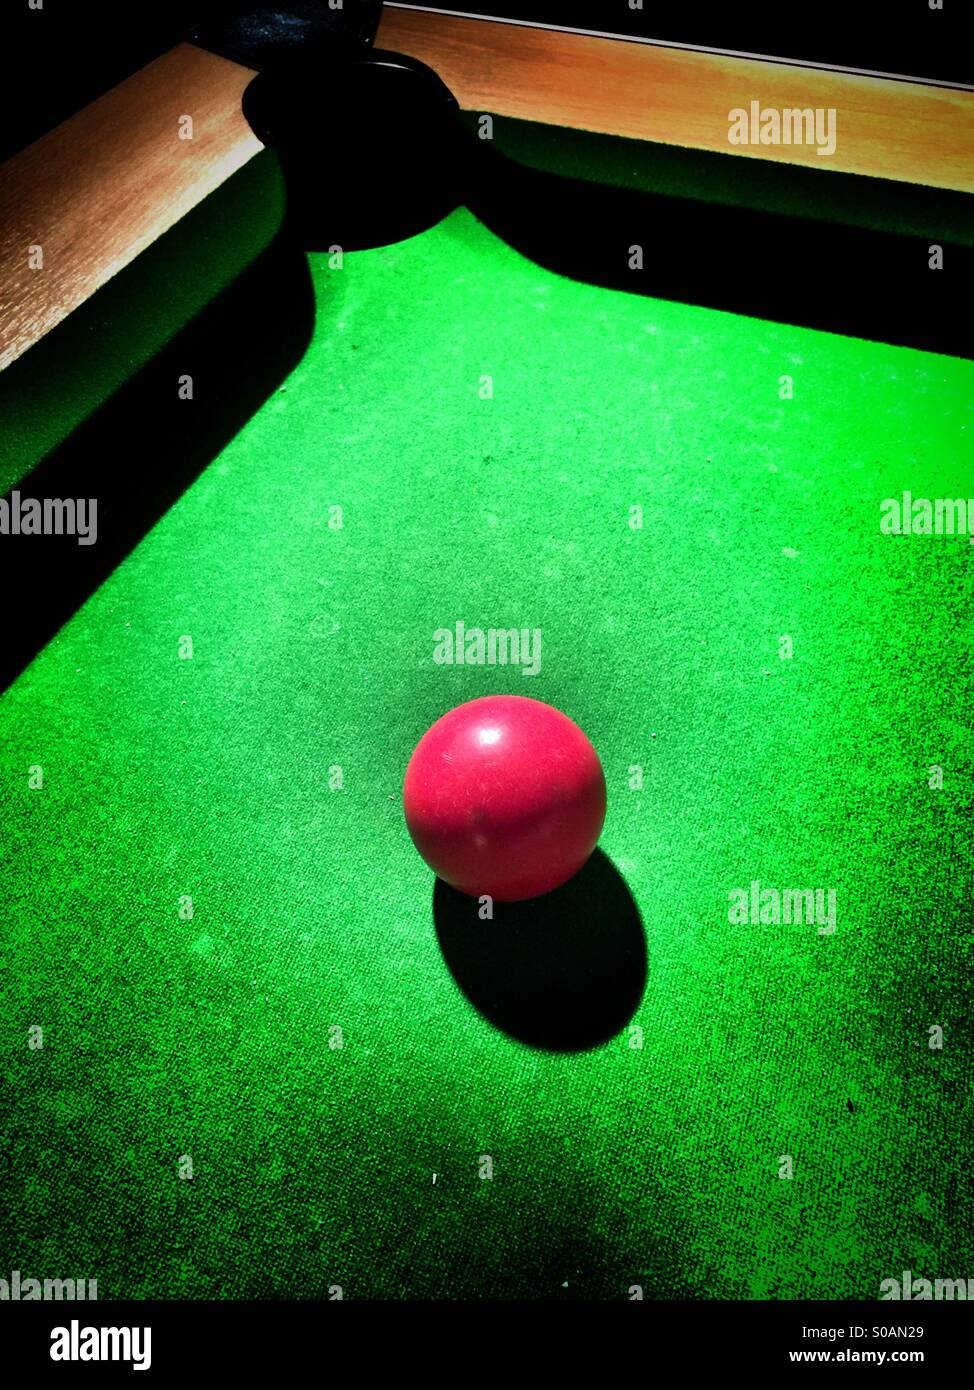 Snooker red ball going towards the hole - Stock Image